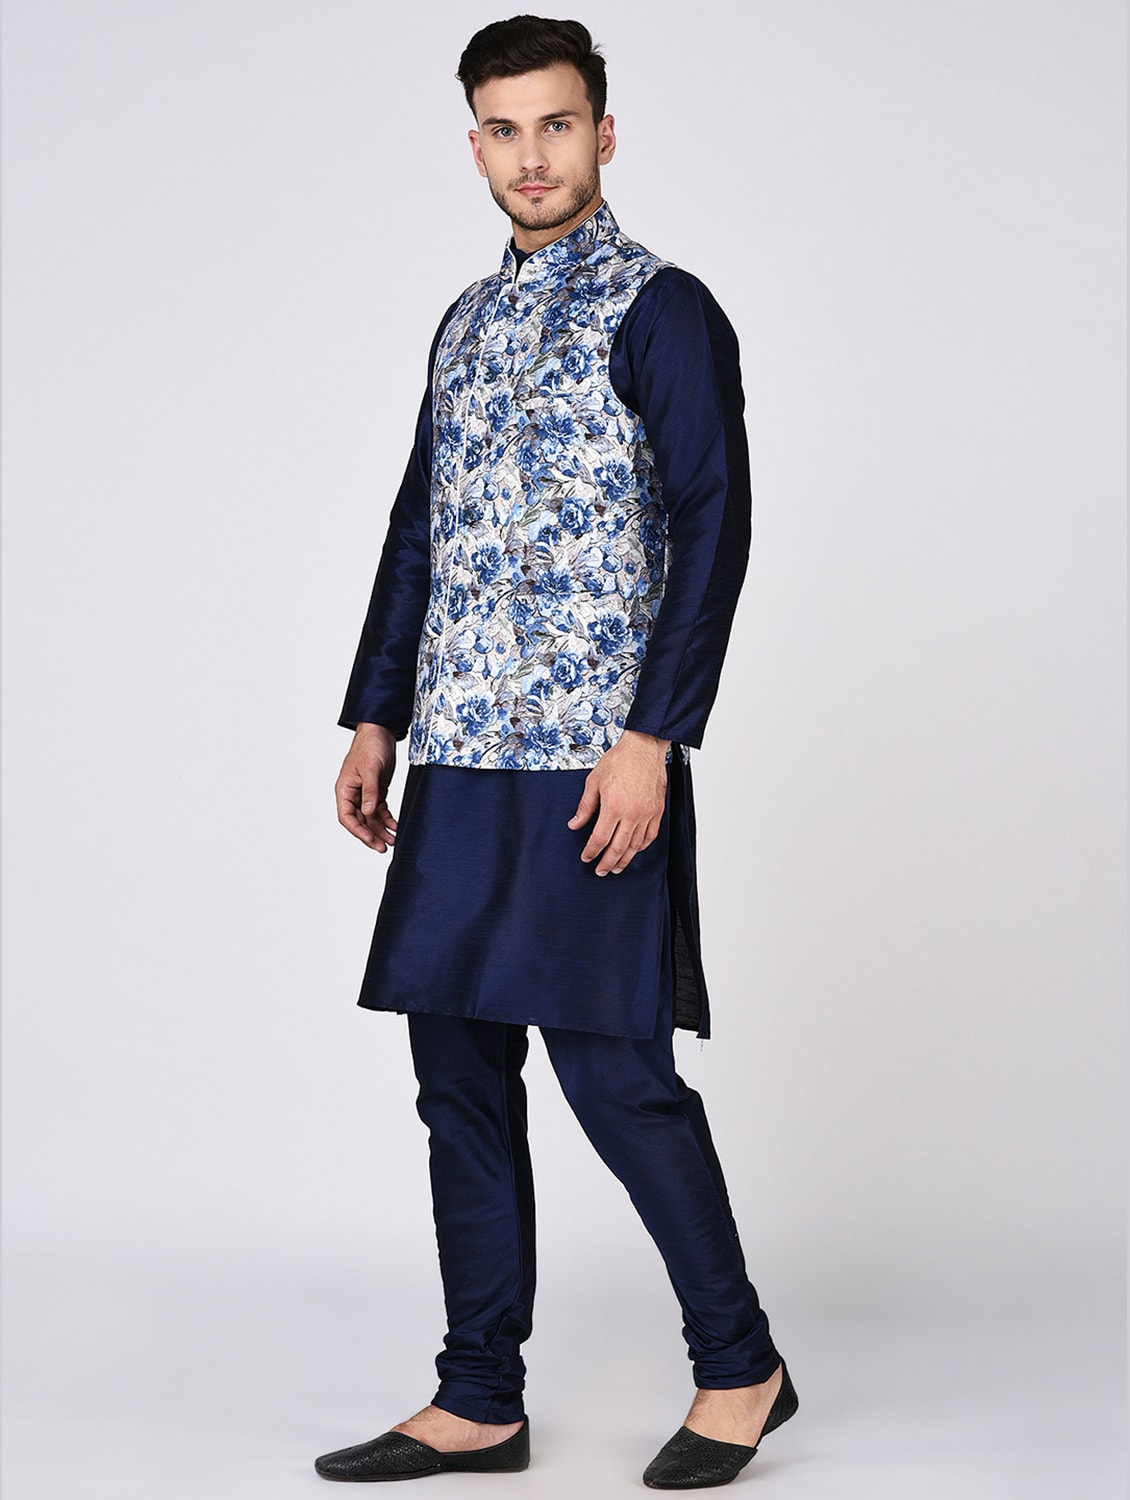 Buy Navy Blue Dupion Kurta Pyjama Set With Nehru Jacket by Tag 7 - Online  shopping for Ethnic Wear Sets in India  2a27f09e5